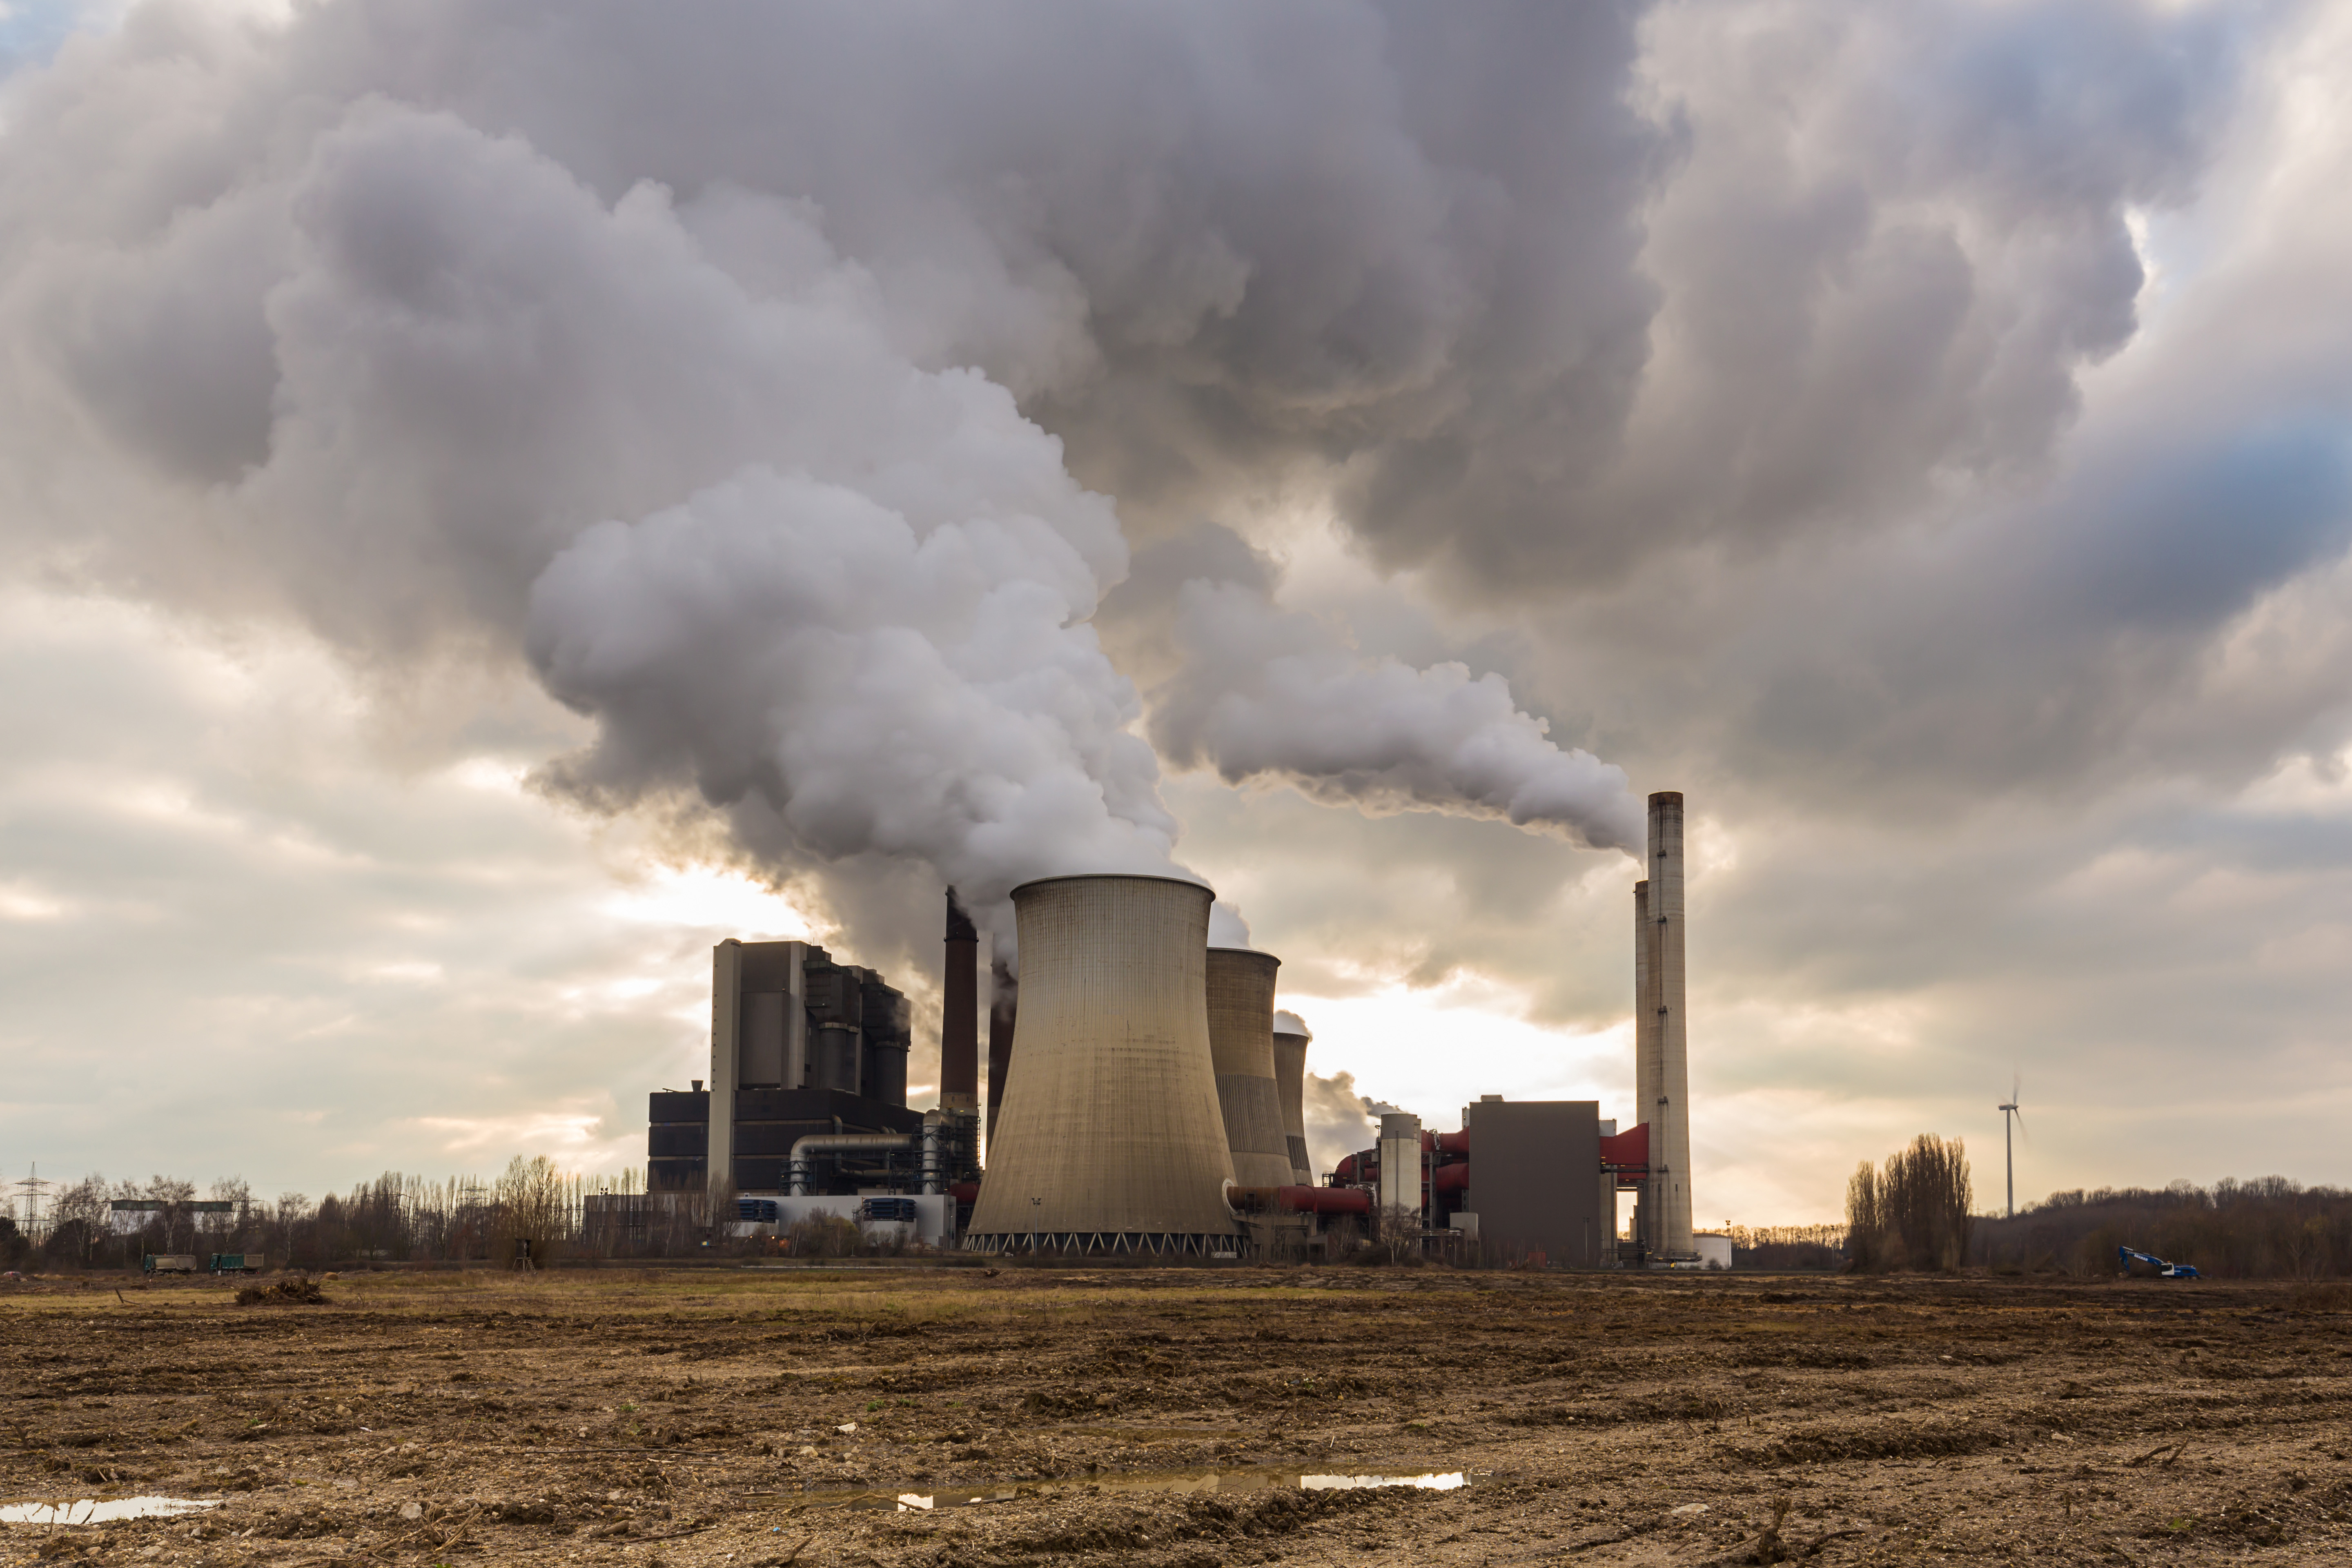 Fossil Fuel Power Plant : Burning fossil fuels poses existential threat to earth